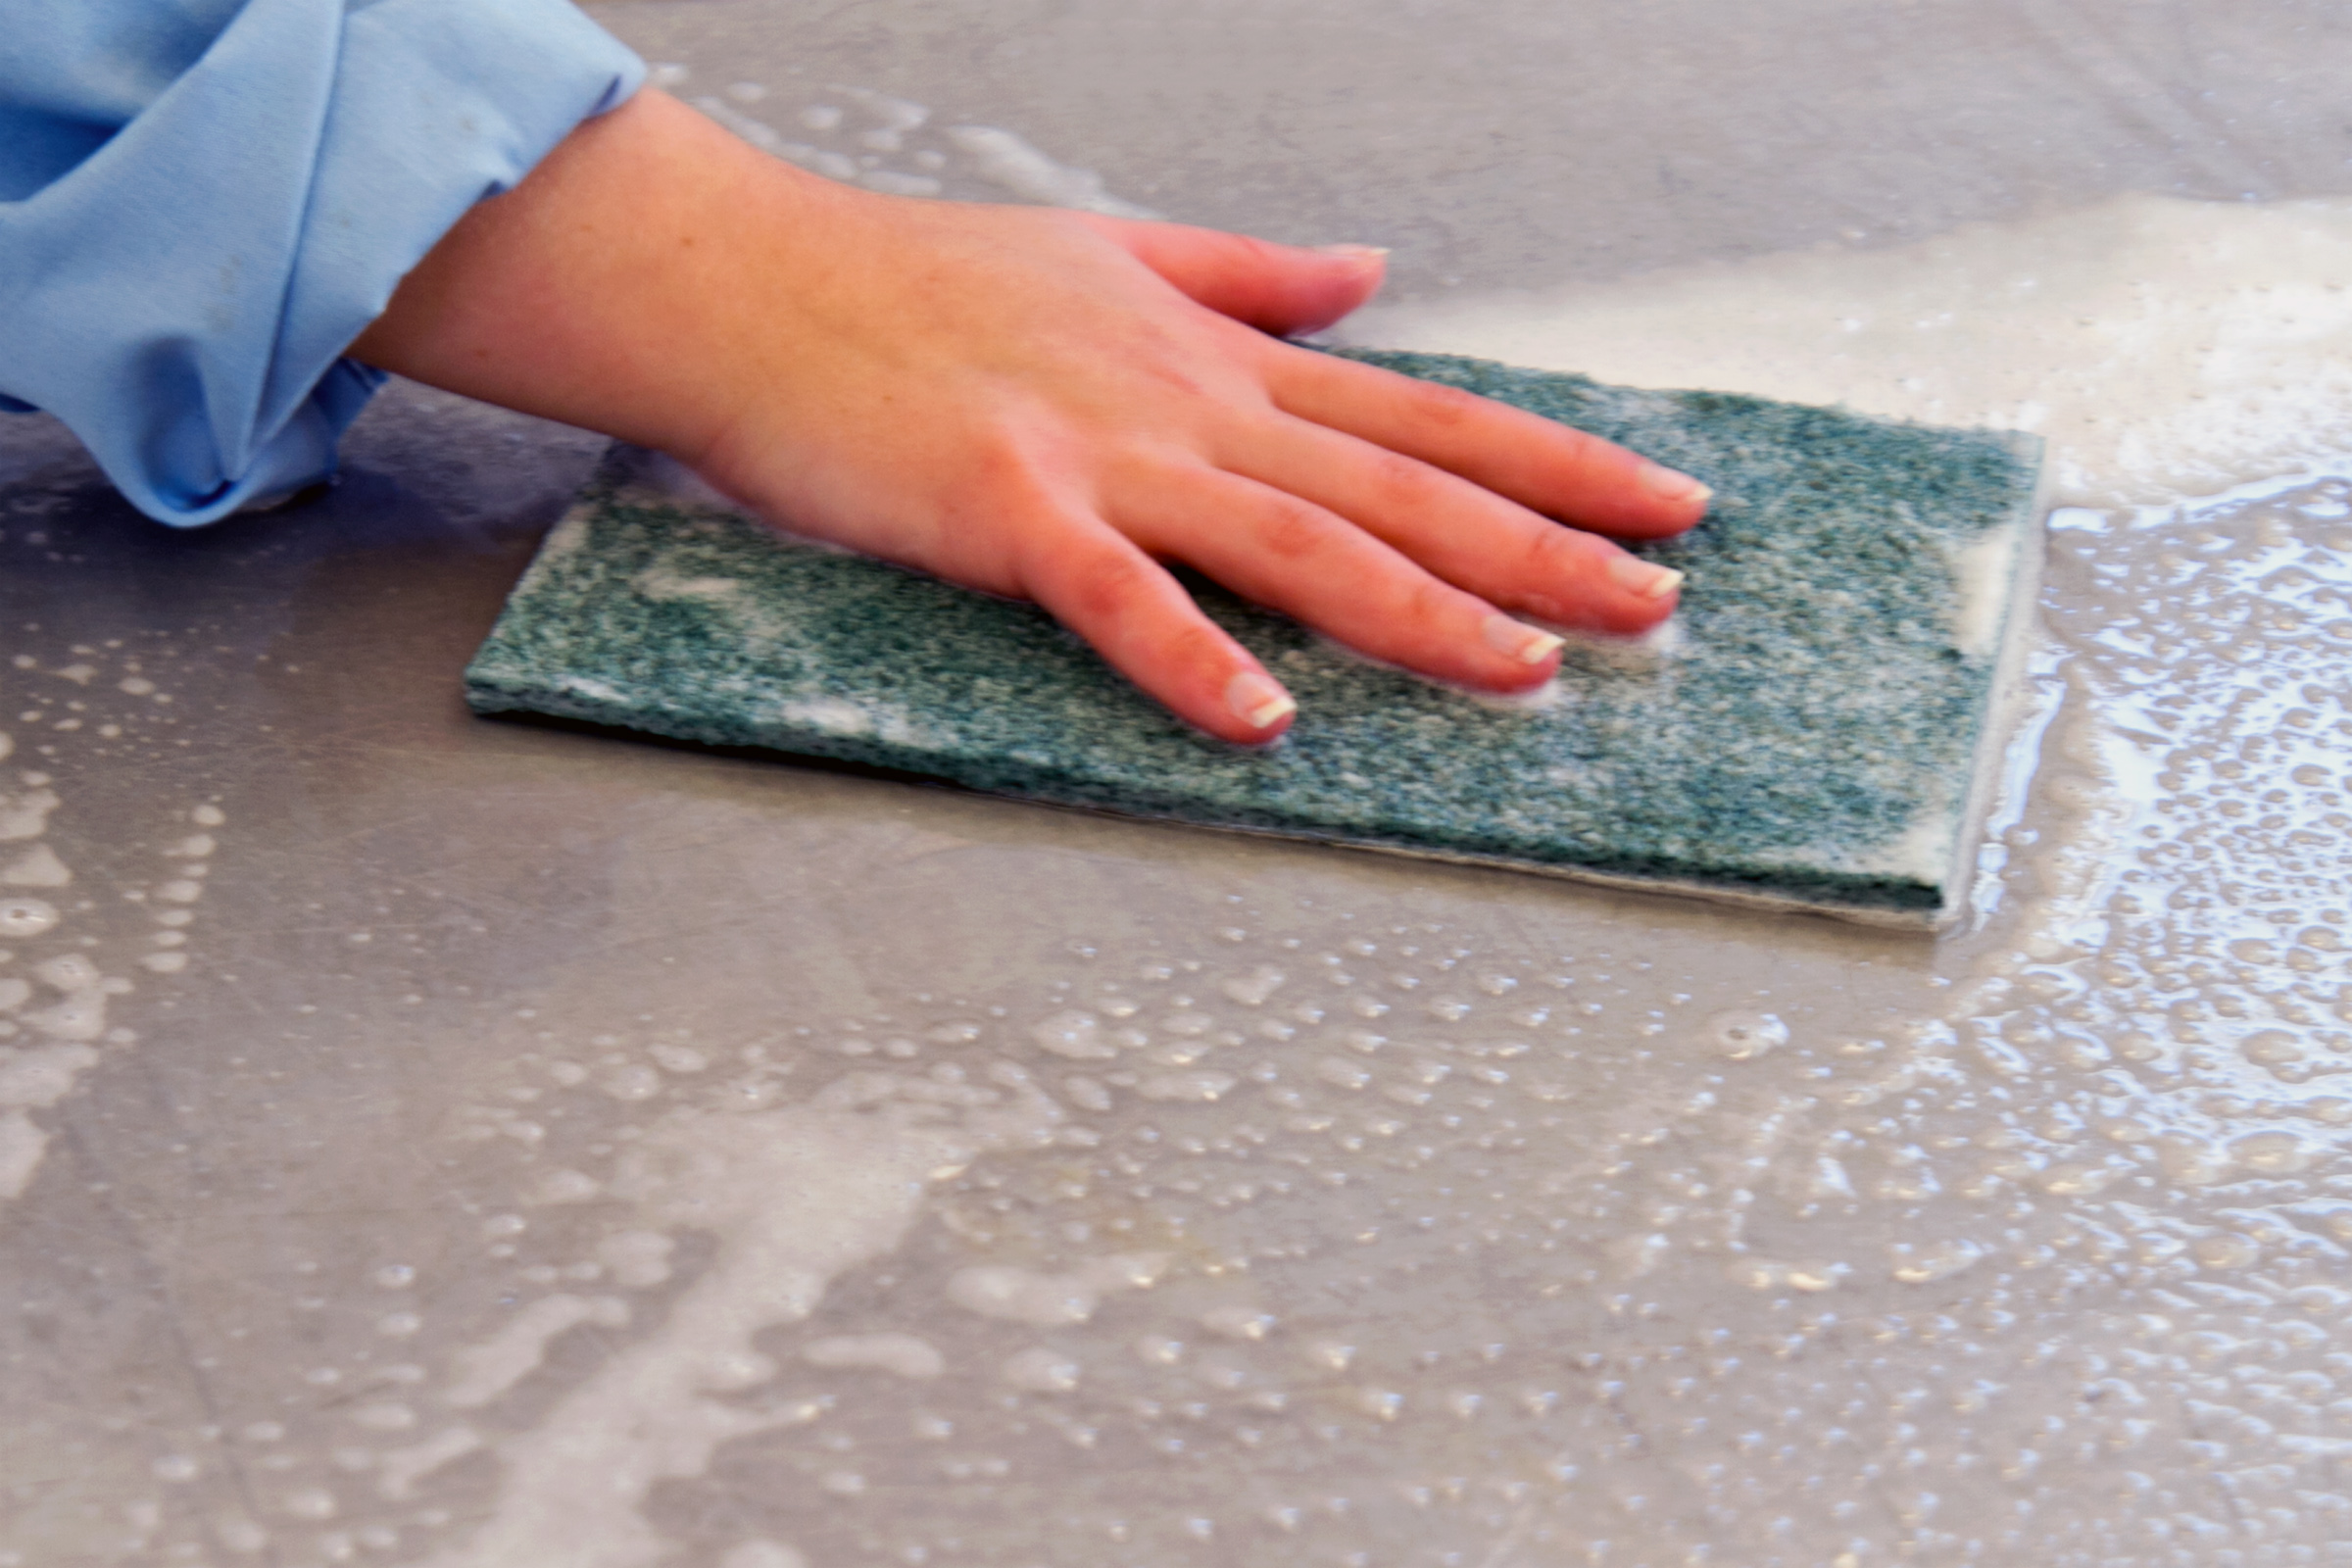 Cleaning Surface before tile removal